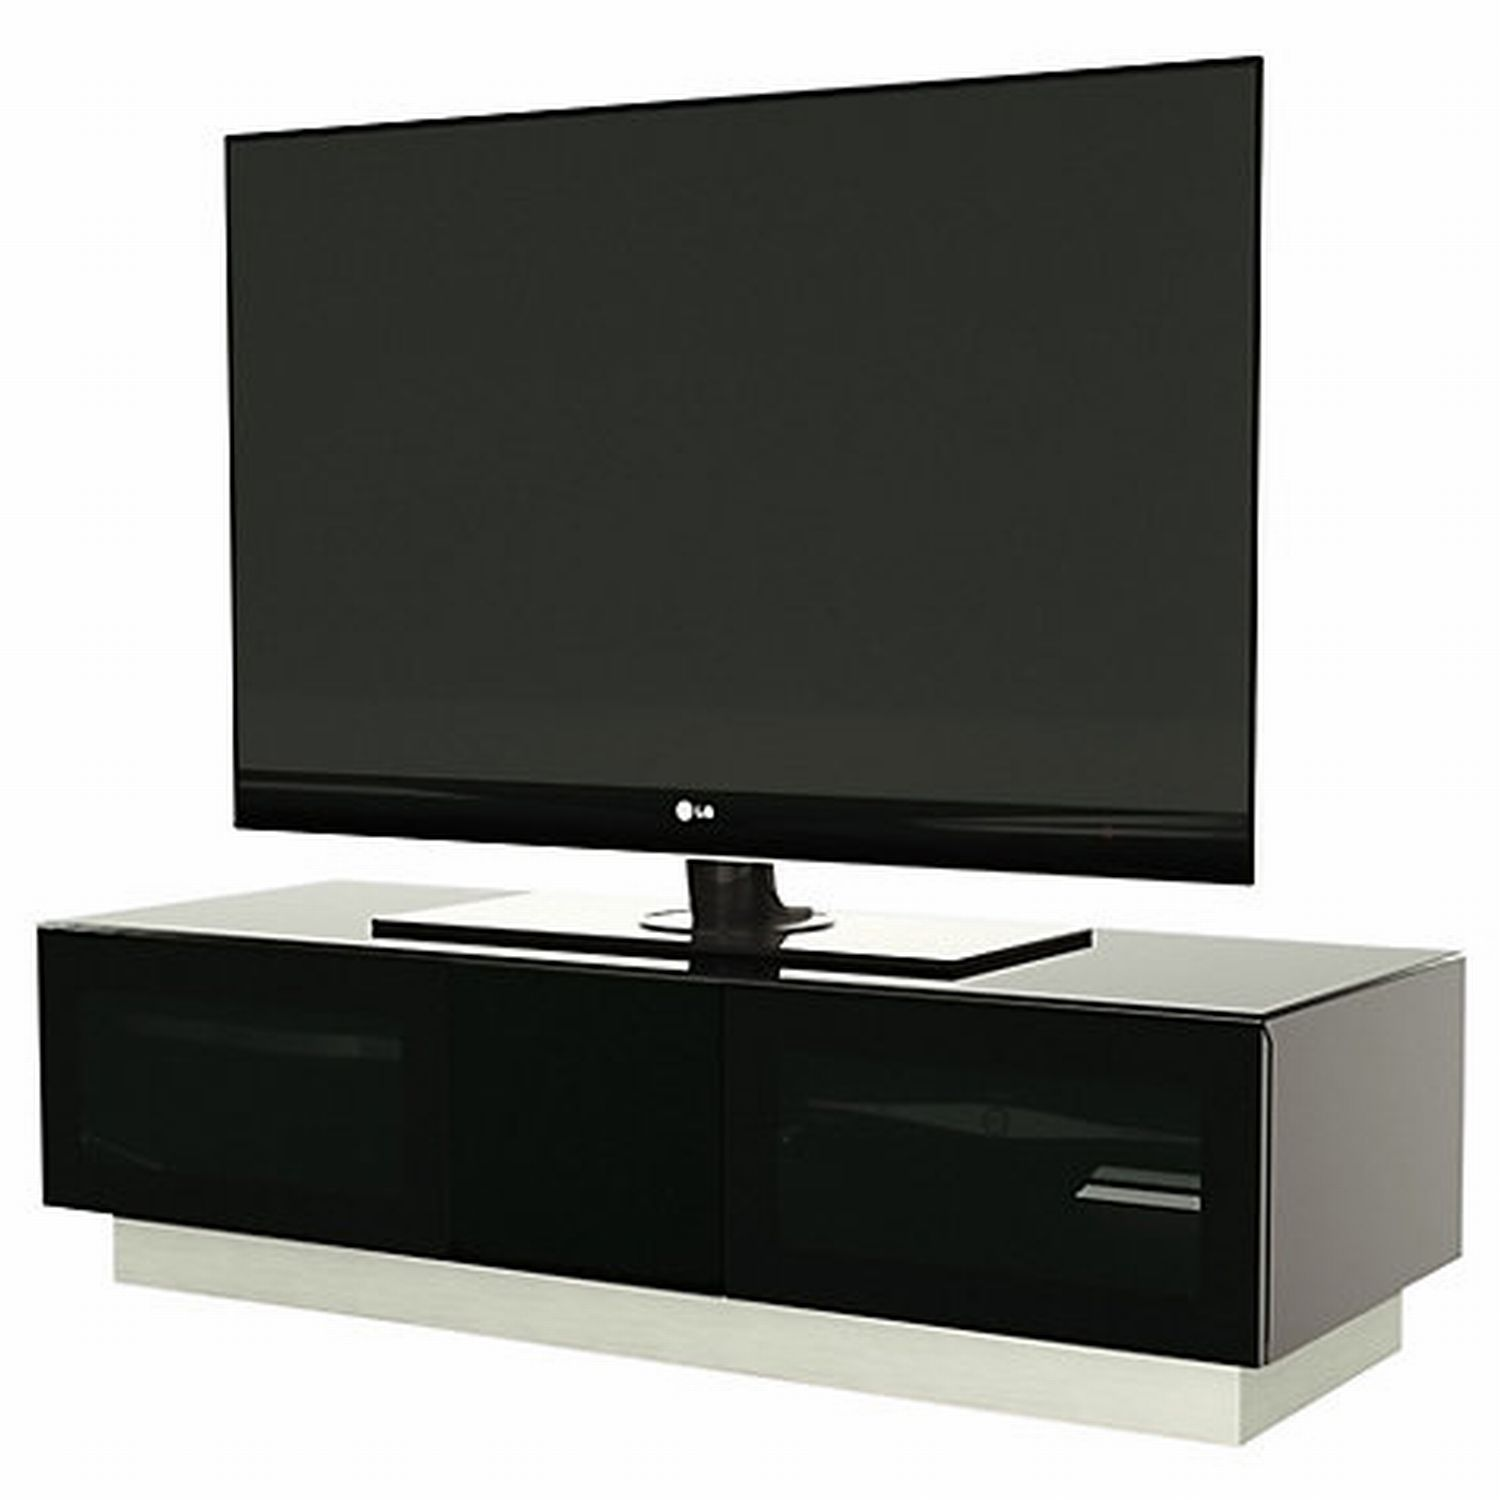 Image of Casa Element High Gloss TV Stand 1250